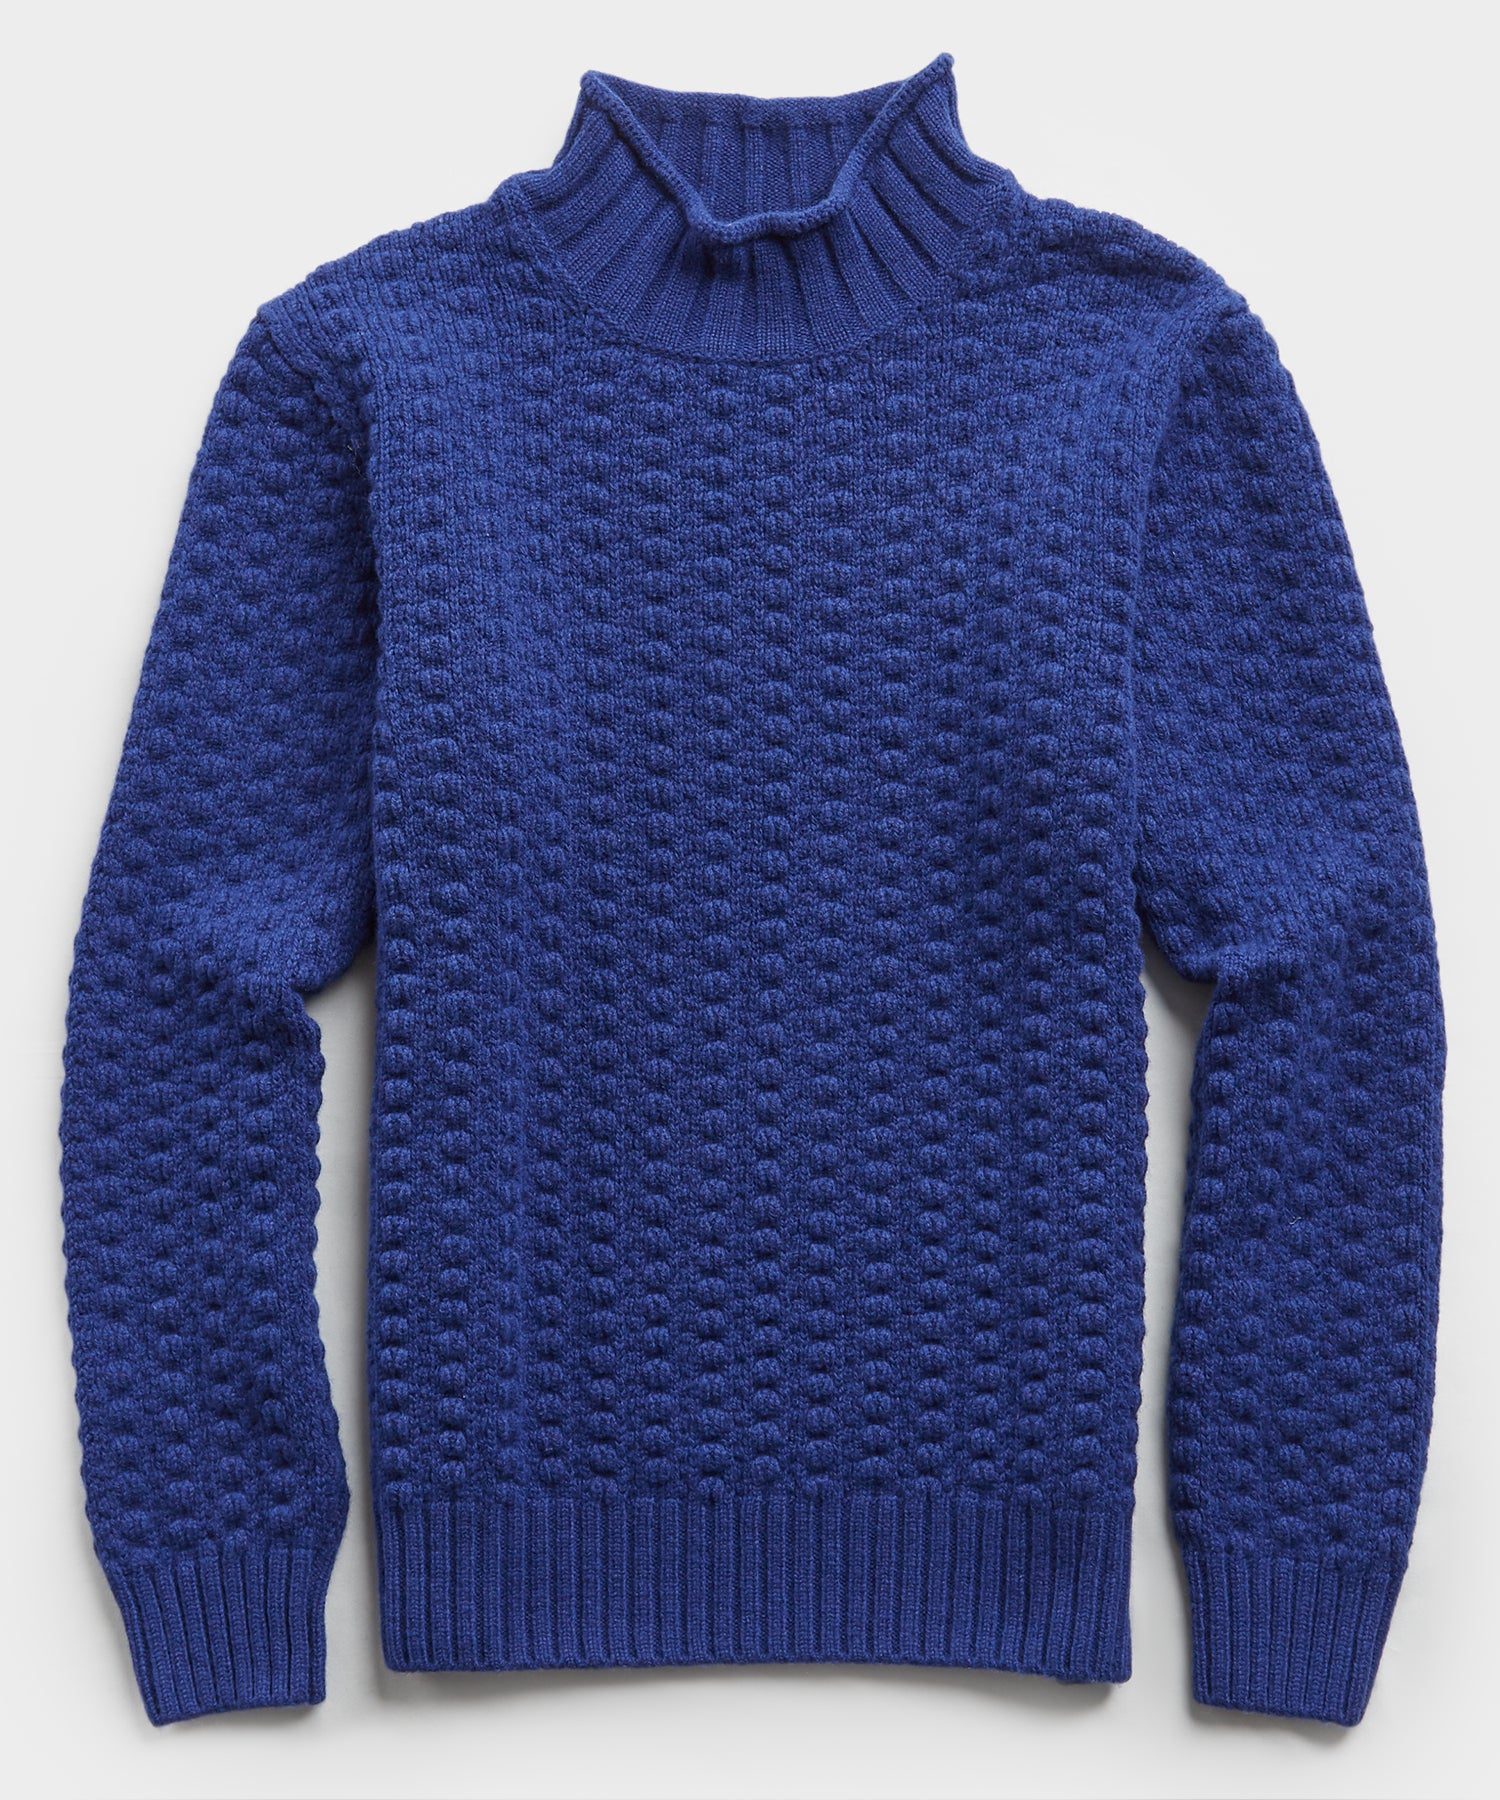 Inis Meain Moss Stitch High Ribbed Mock Neck in Cobalt